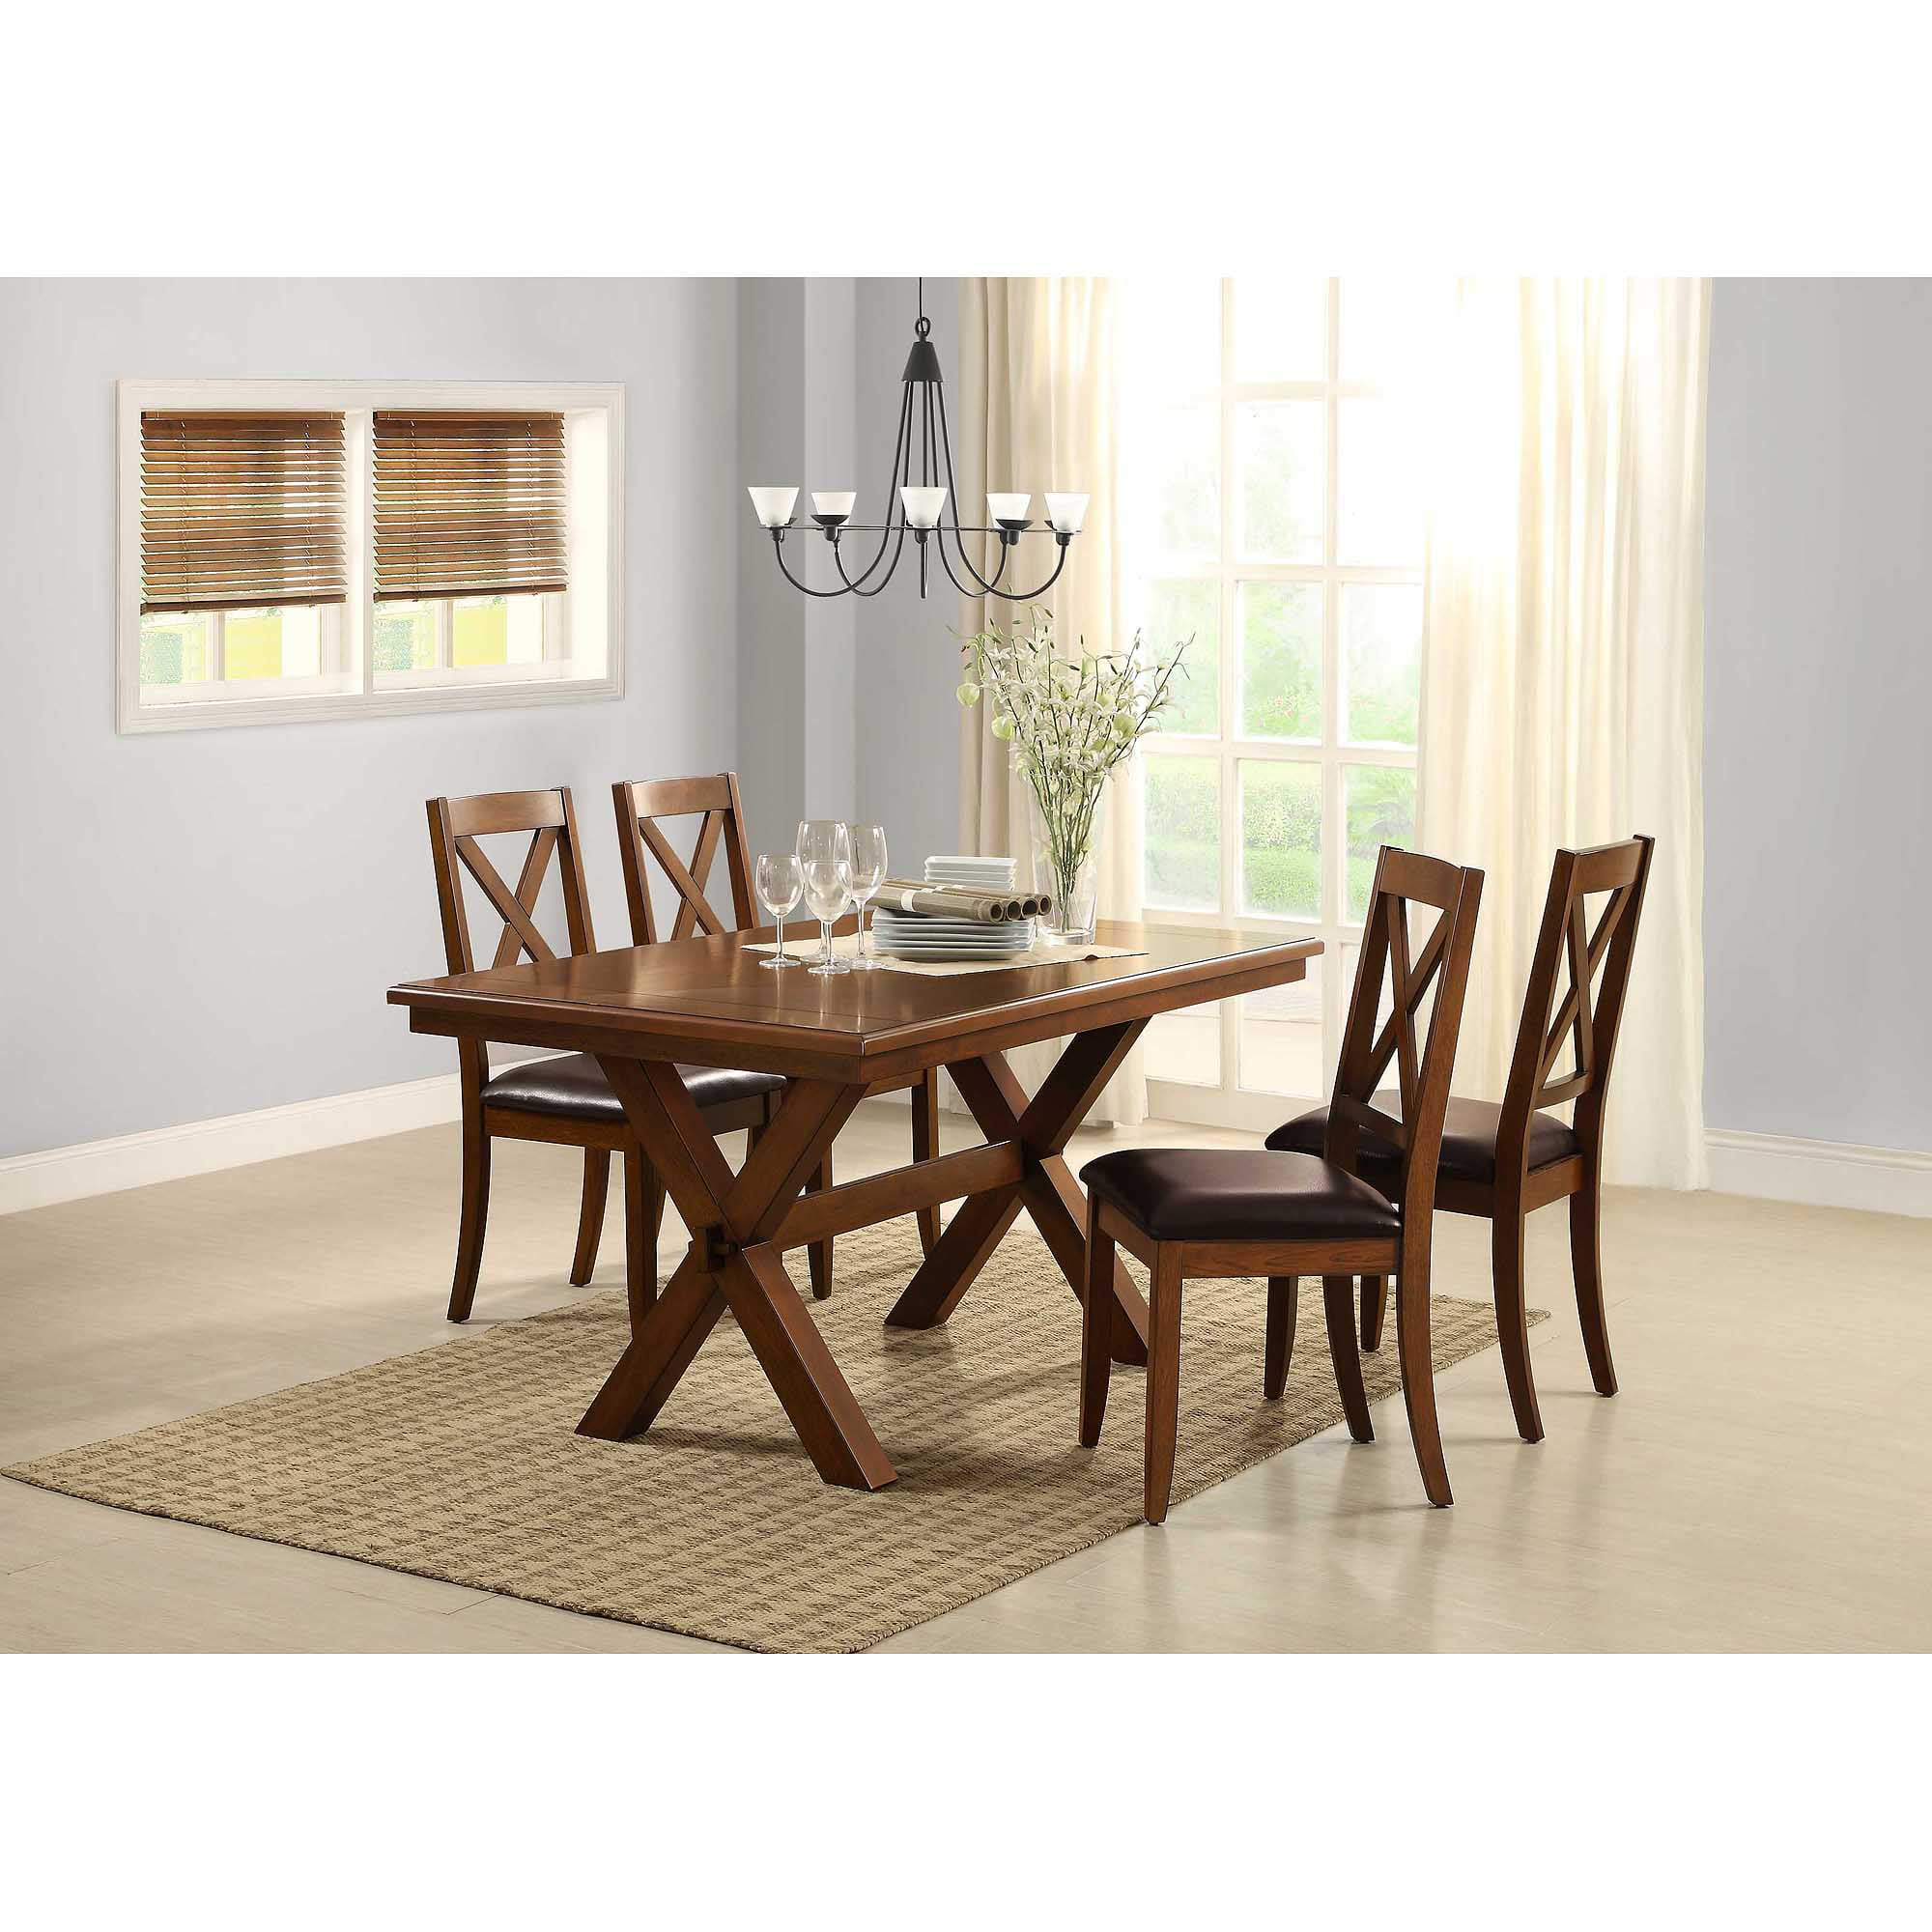 Better Homes and Gardens Maddox Crossing Dining Table, Brown ...